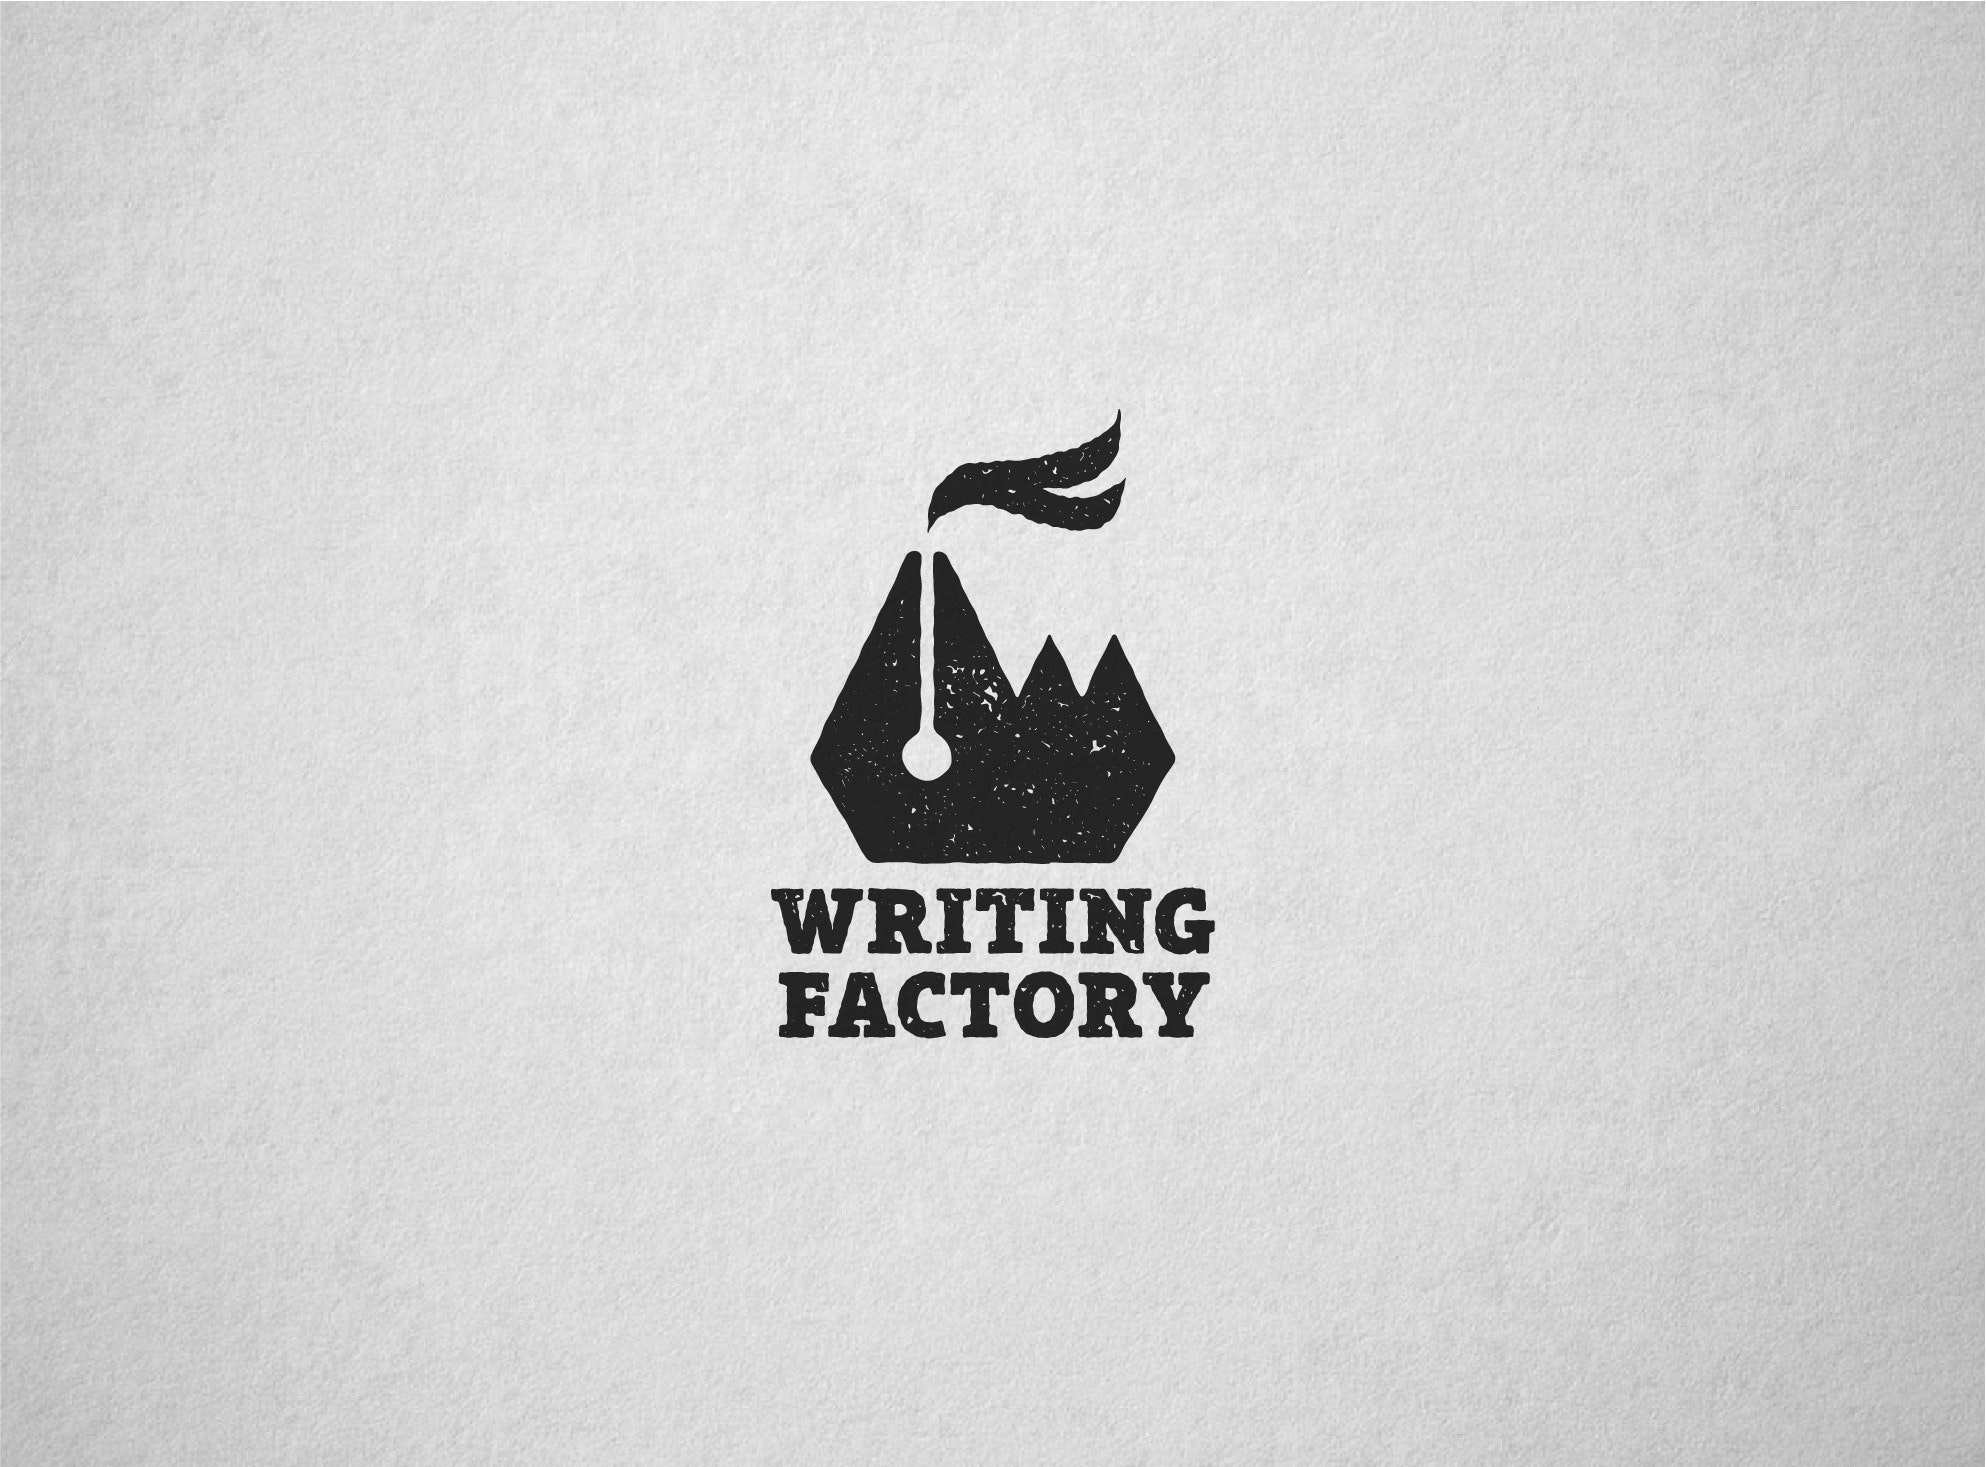 Writing Factory logo